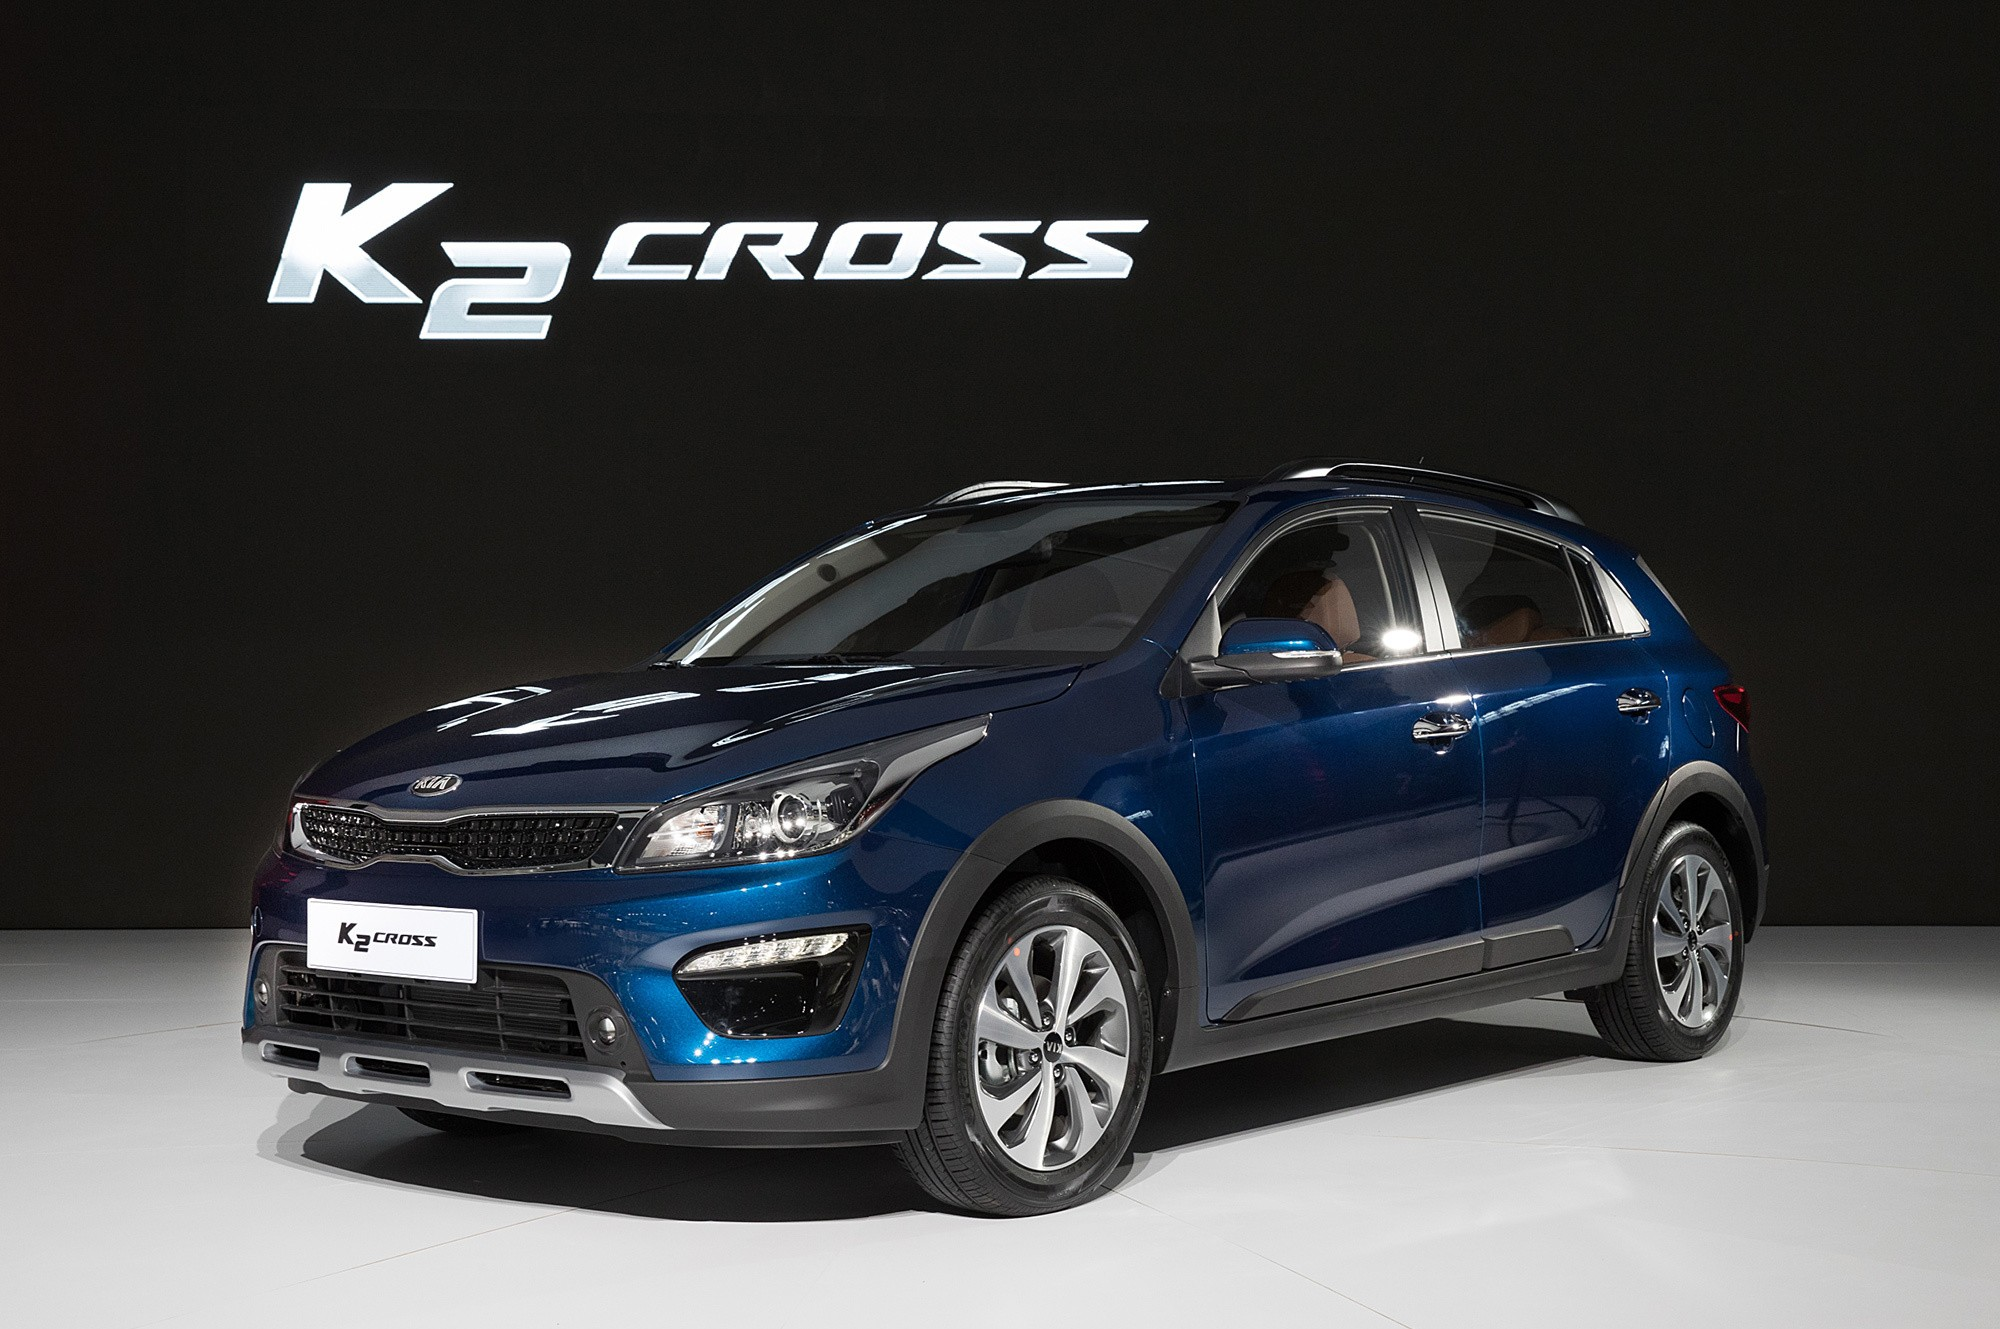 kia_k2_cross